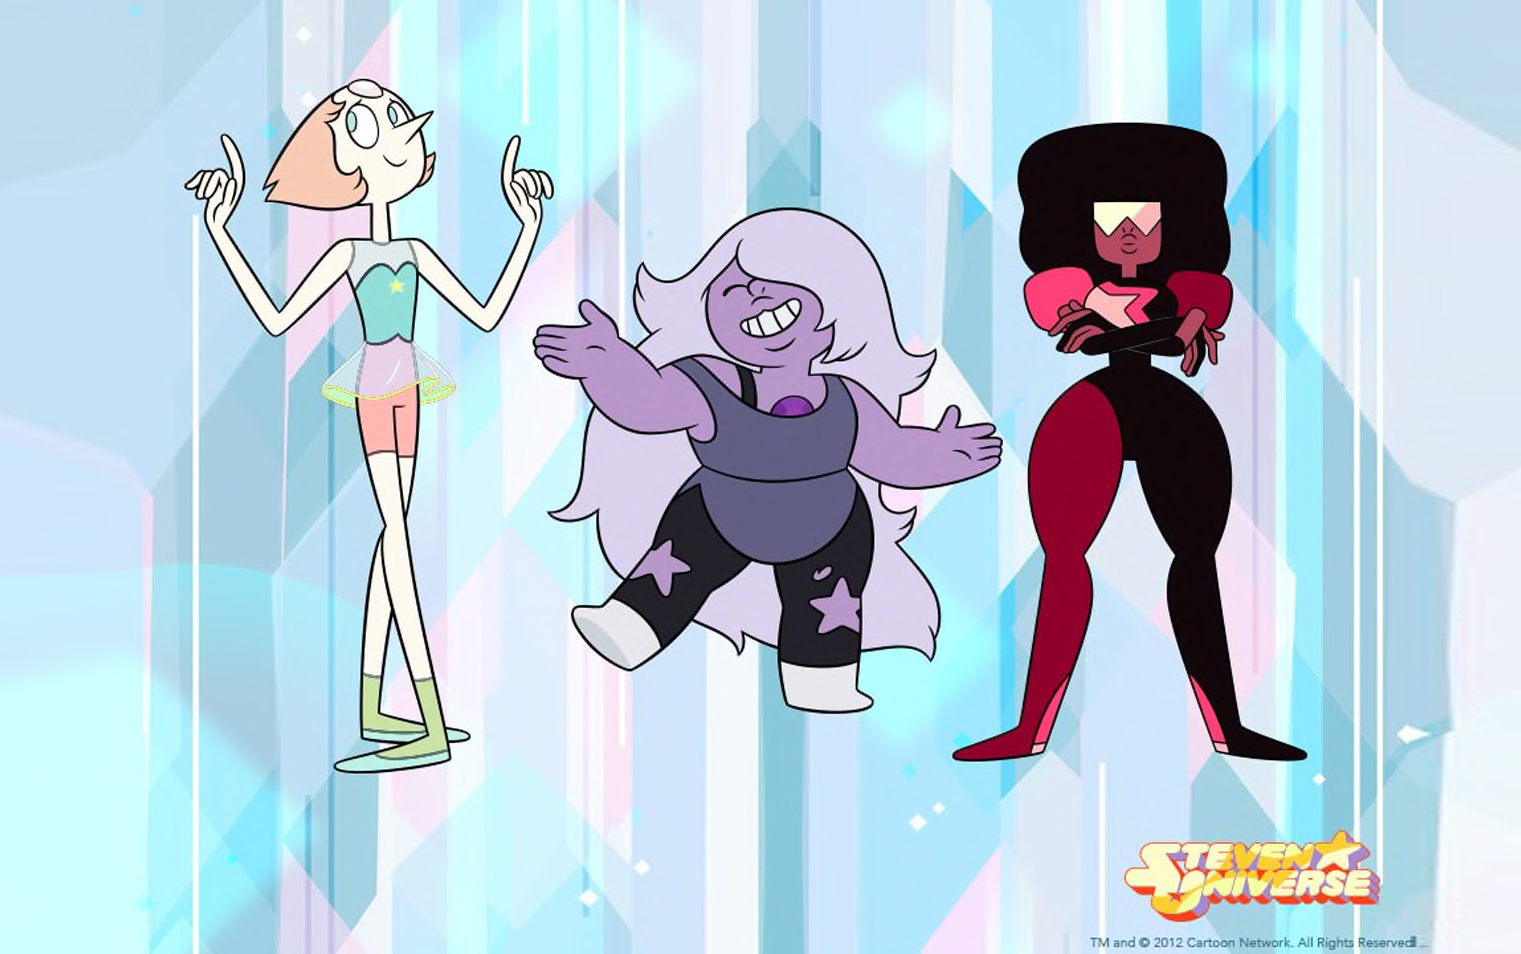 Art from Steven Universe. Credit: Cartoon Network